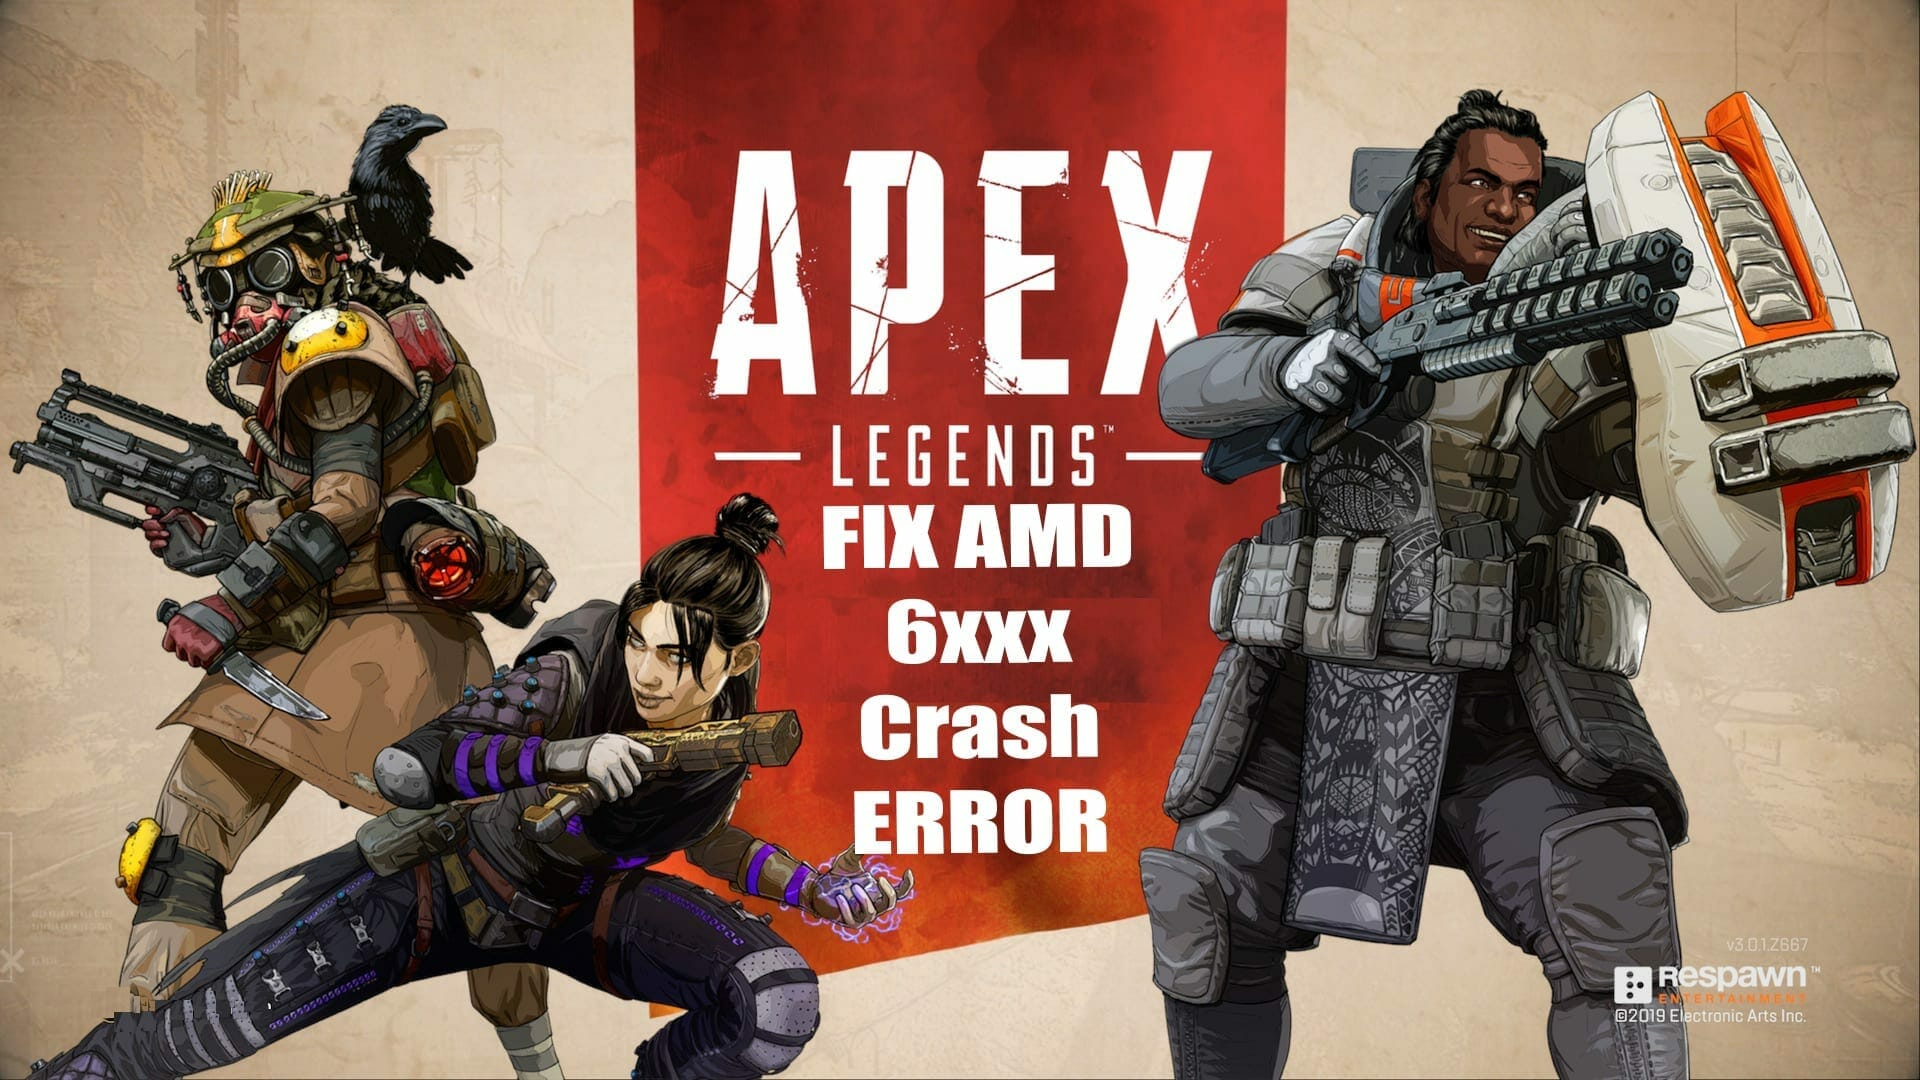 Apex Legends First Special Event And Loot Teased For Valentine's Day